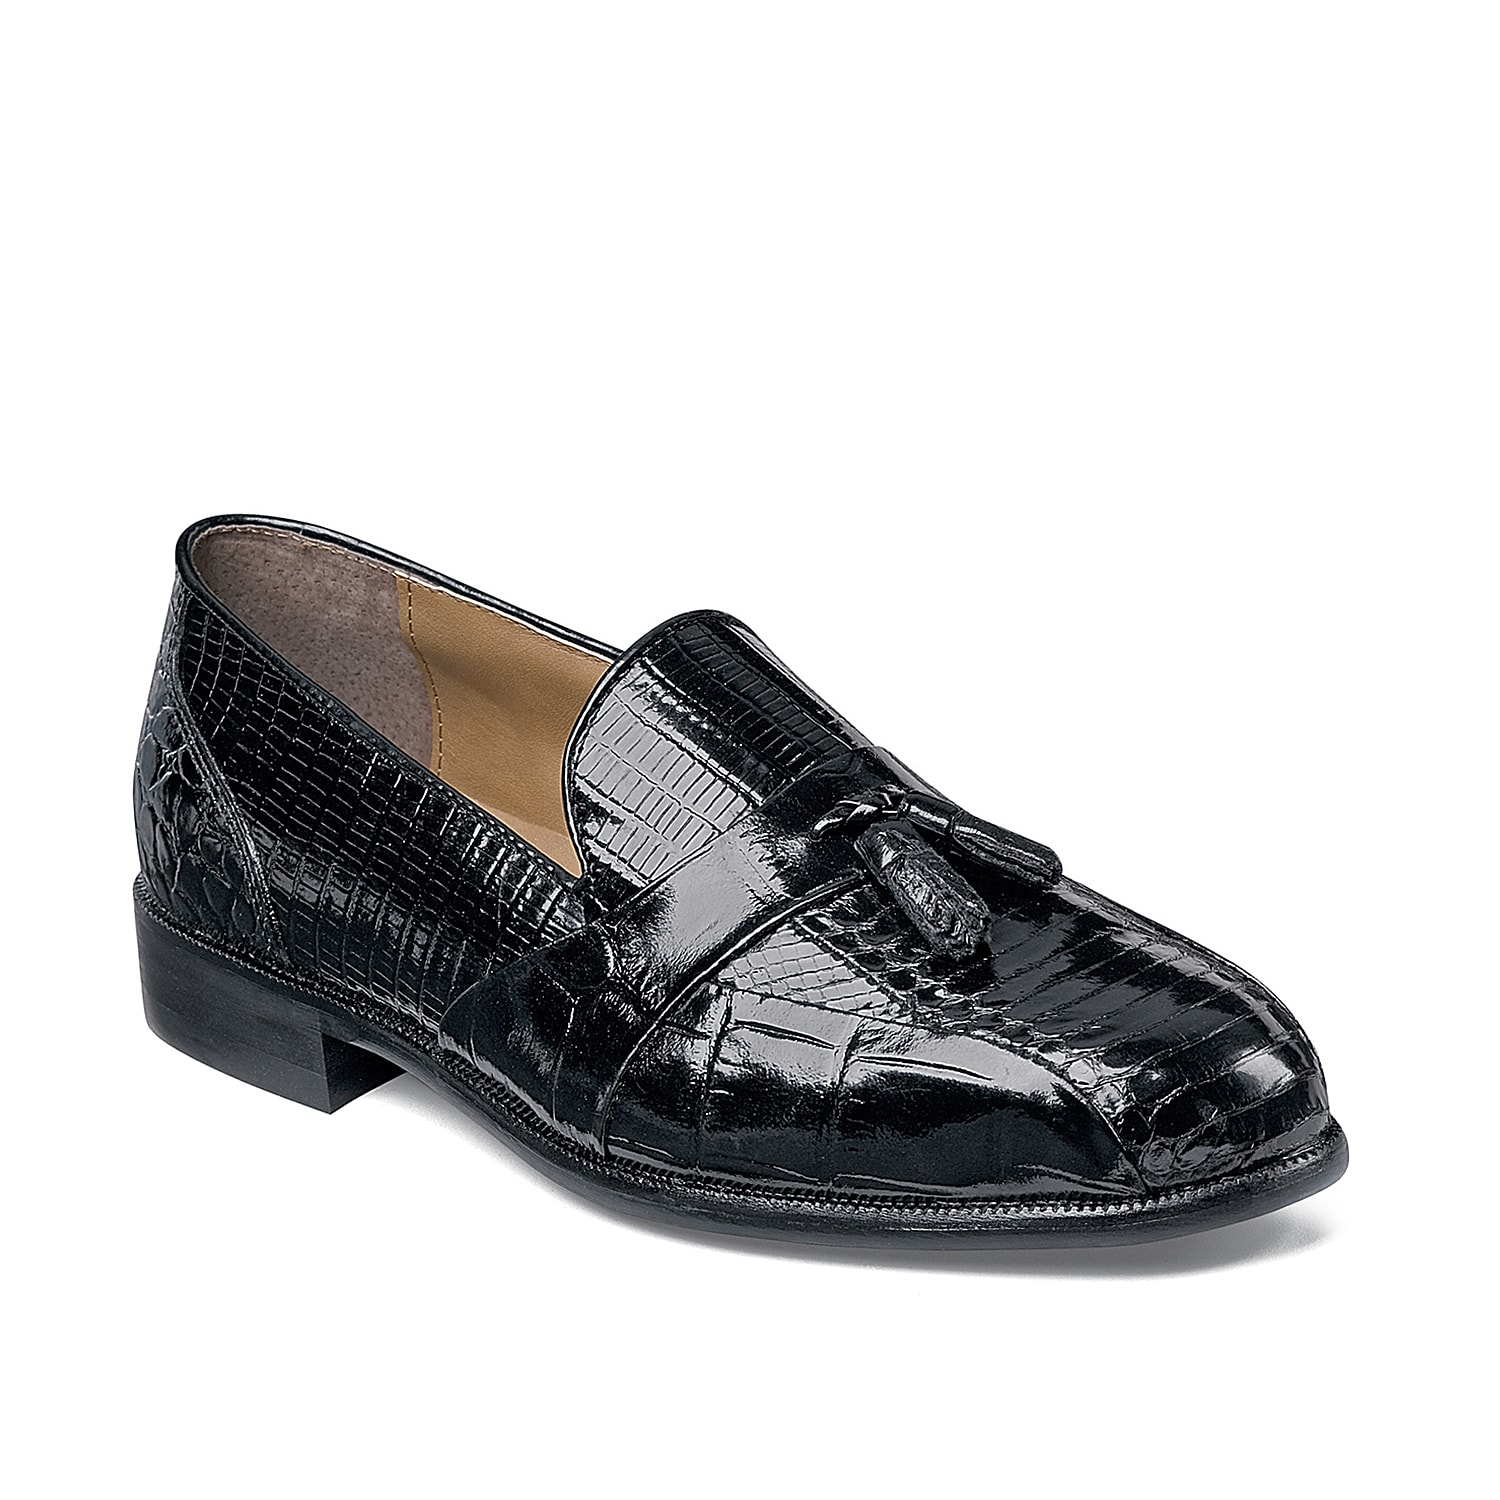 For a classic contemporary leather loafer that will complement your favorite dress looks, the Stacy Adams Alberto leather slip-on will surely fit the bill!